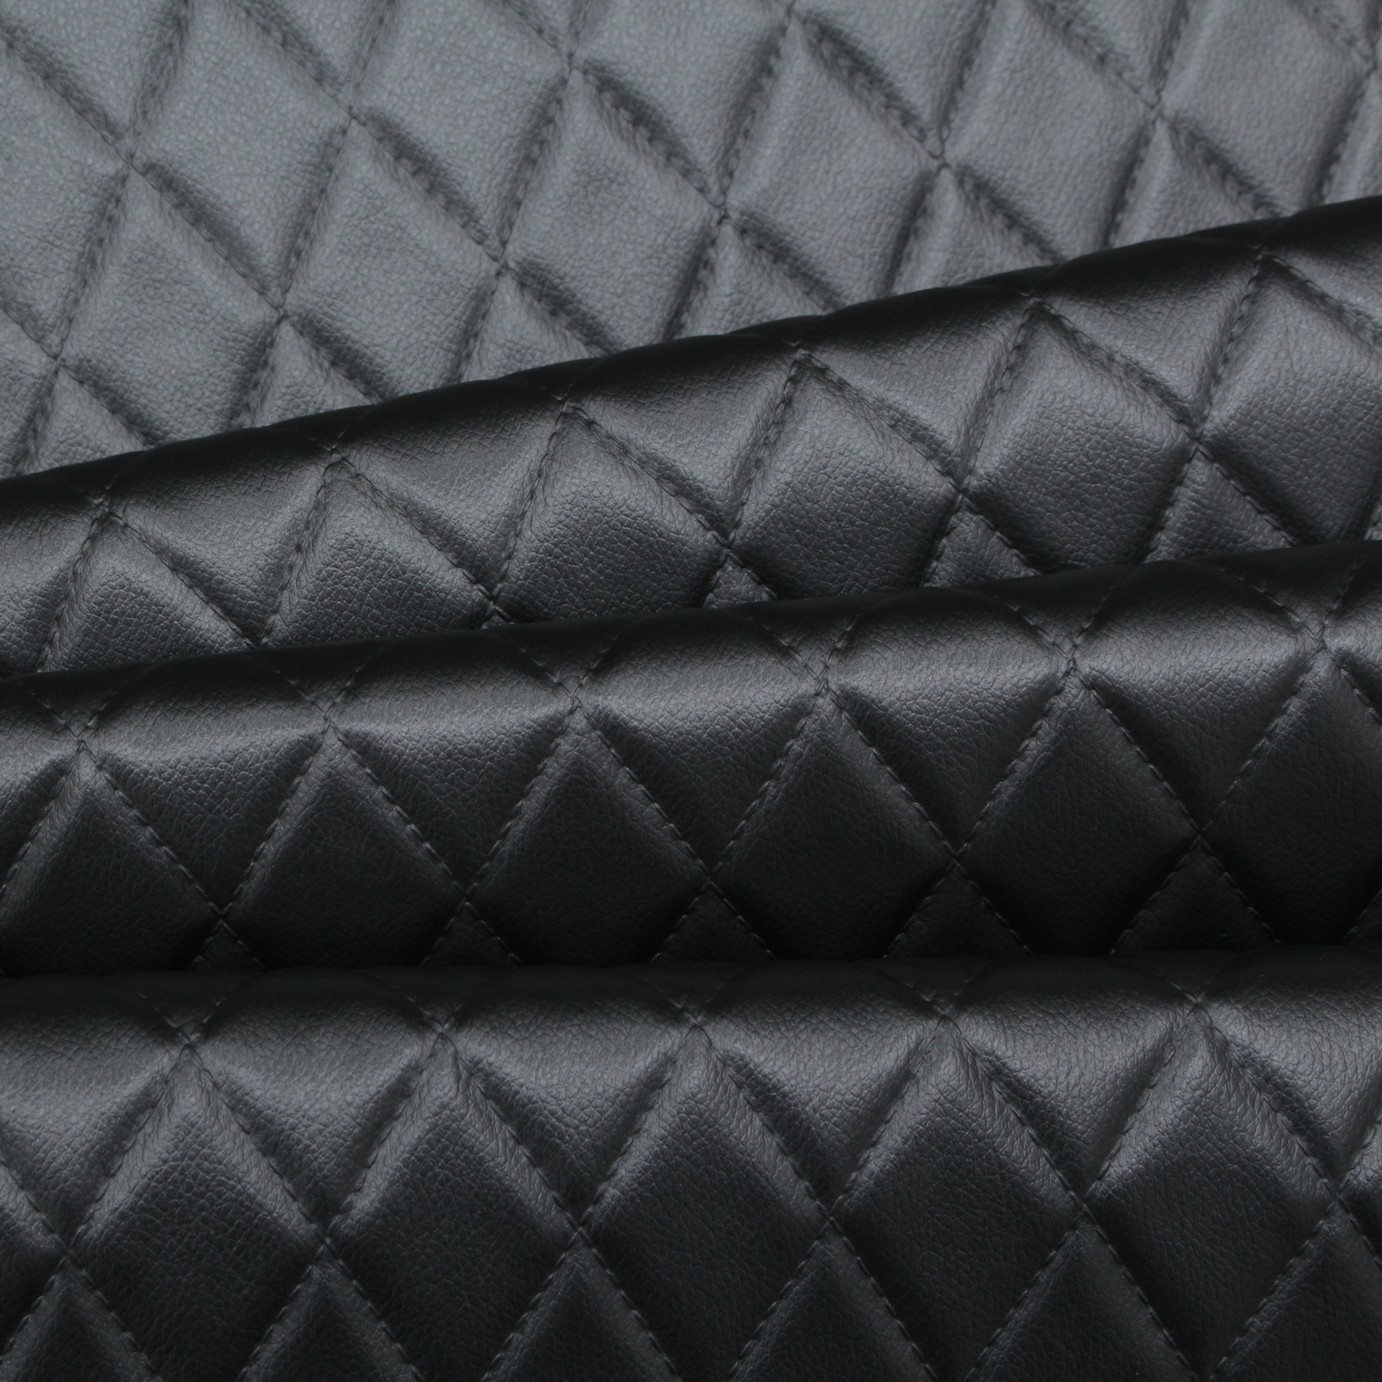 faux leather diamond stitch embossed padded car upholstery. Black Bedroom Furniture Sets. Home Design Ideas